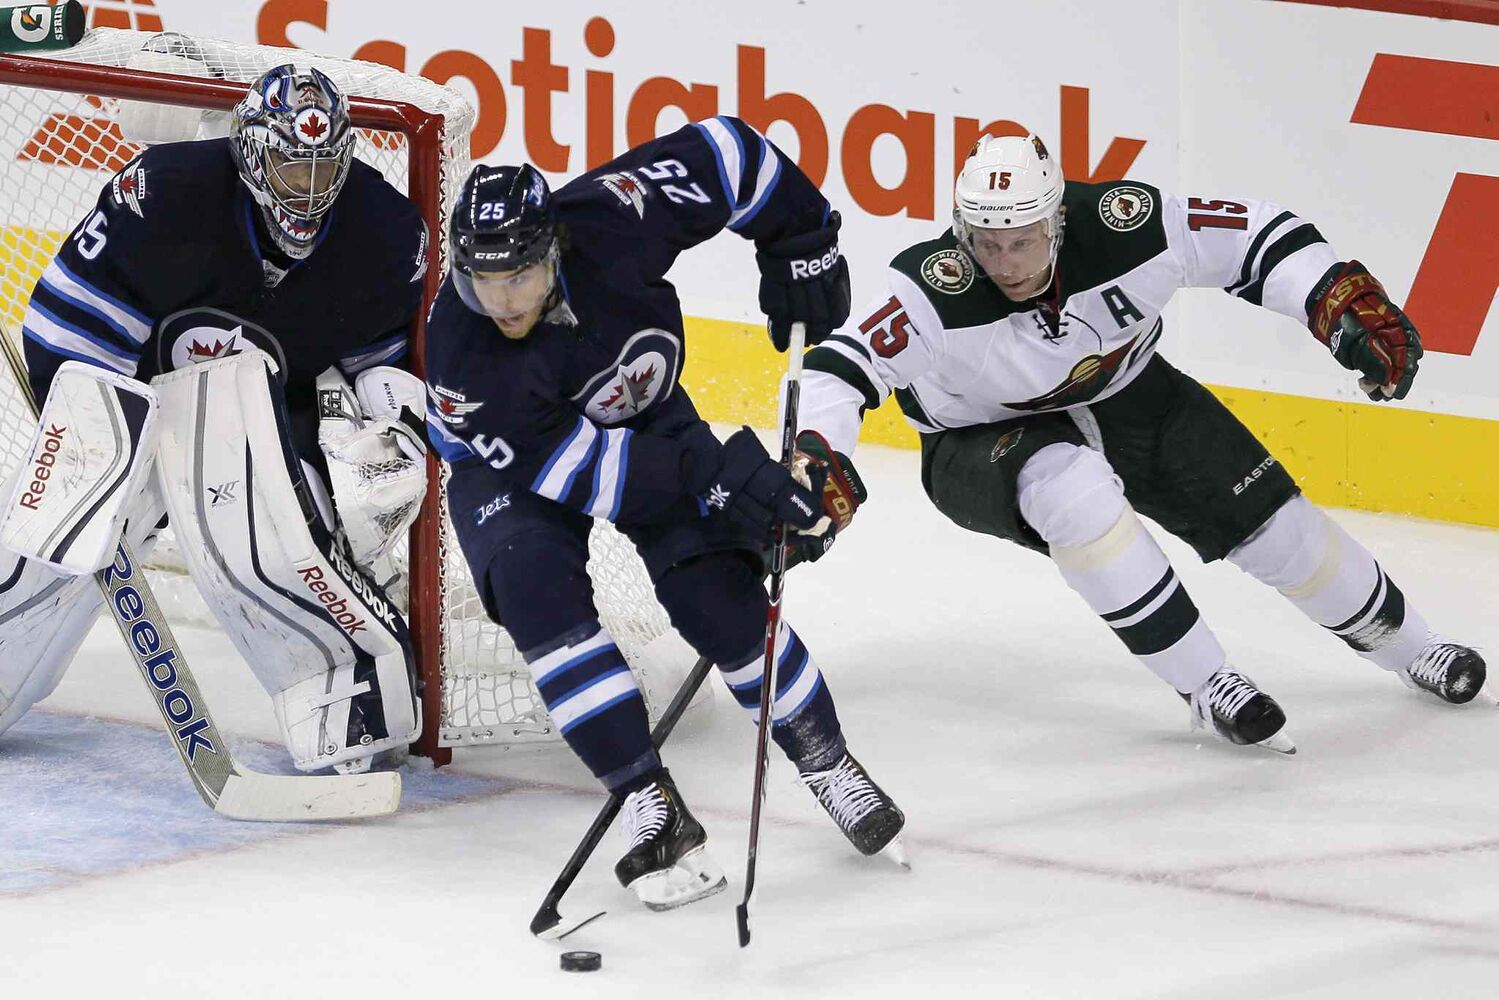 Dany Heatley (right) chases down Zach Redmond of the Winnipeg Jets as goaltender Al Montoya looks on during the first period. (John Woods / The Canadian Press)